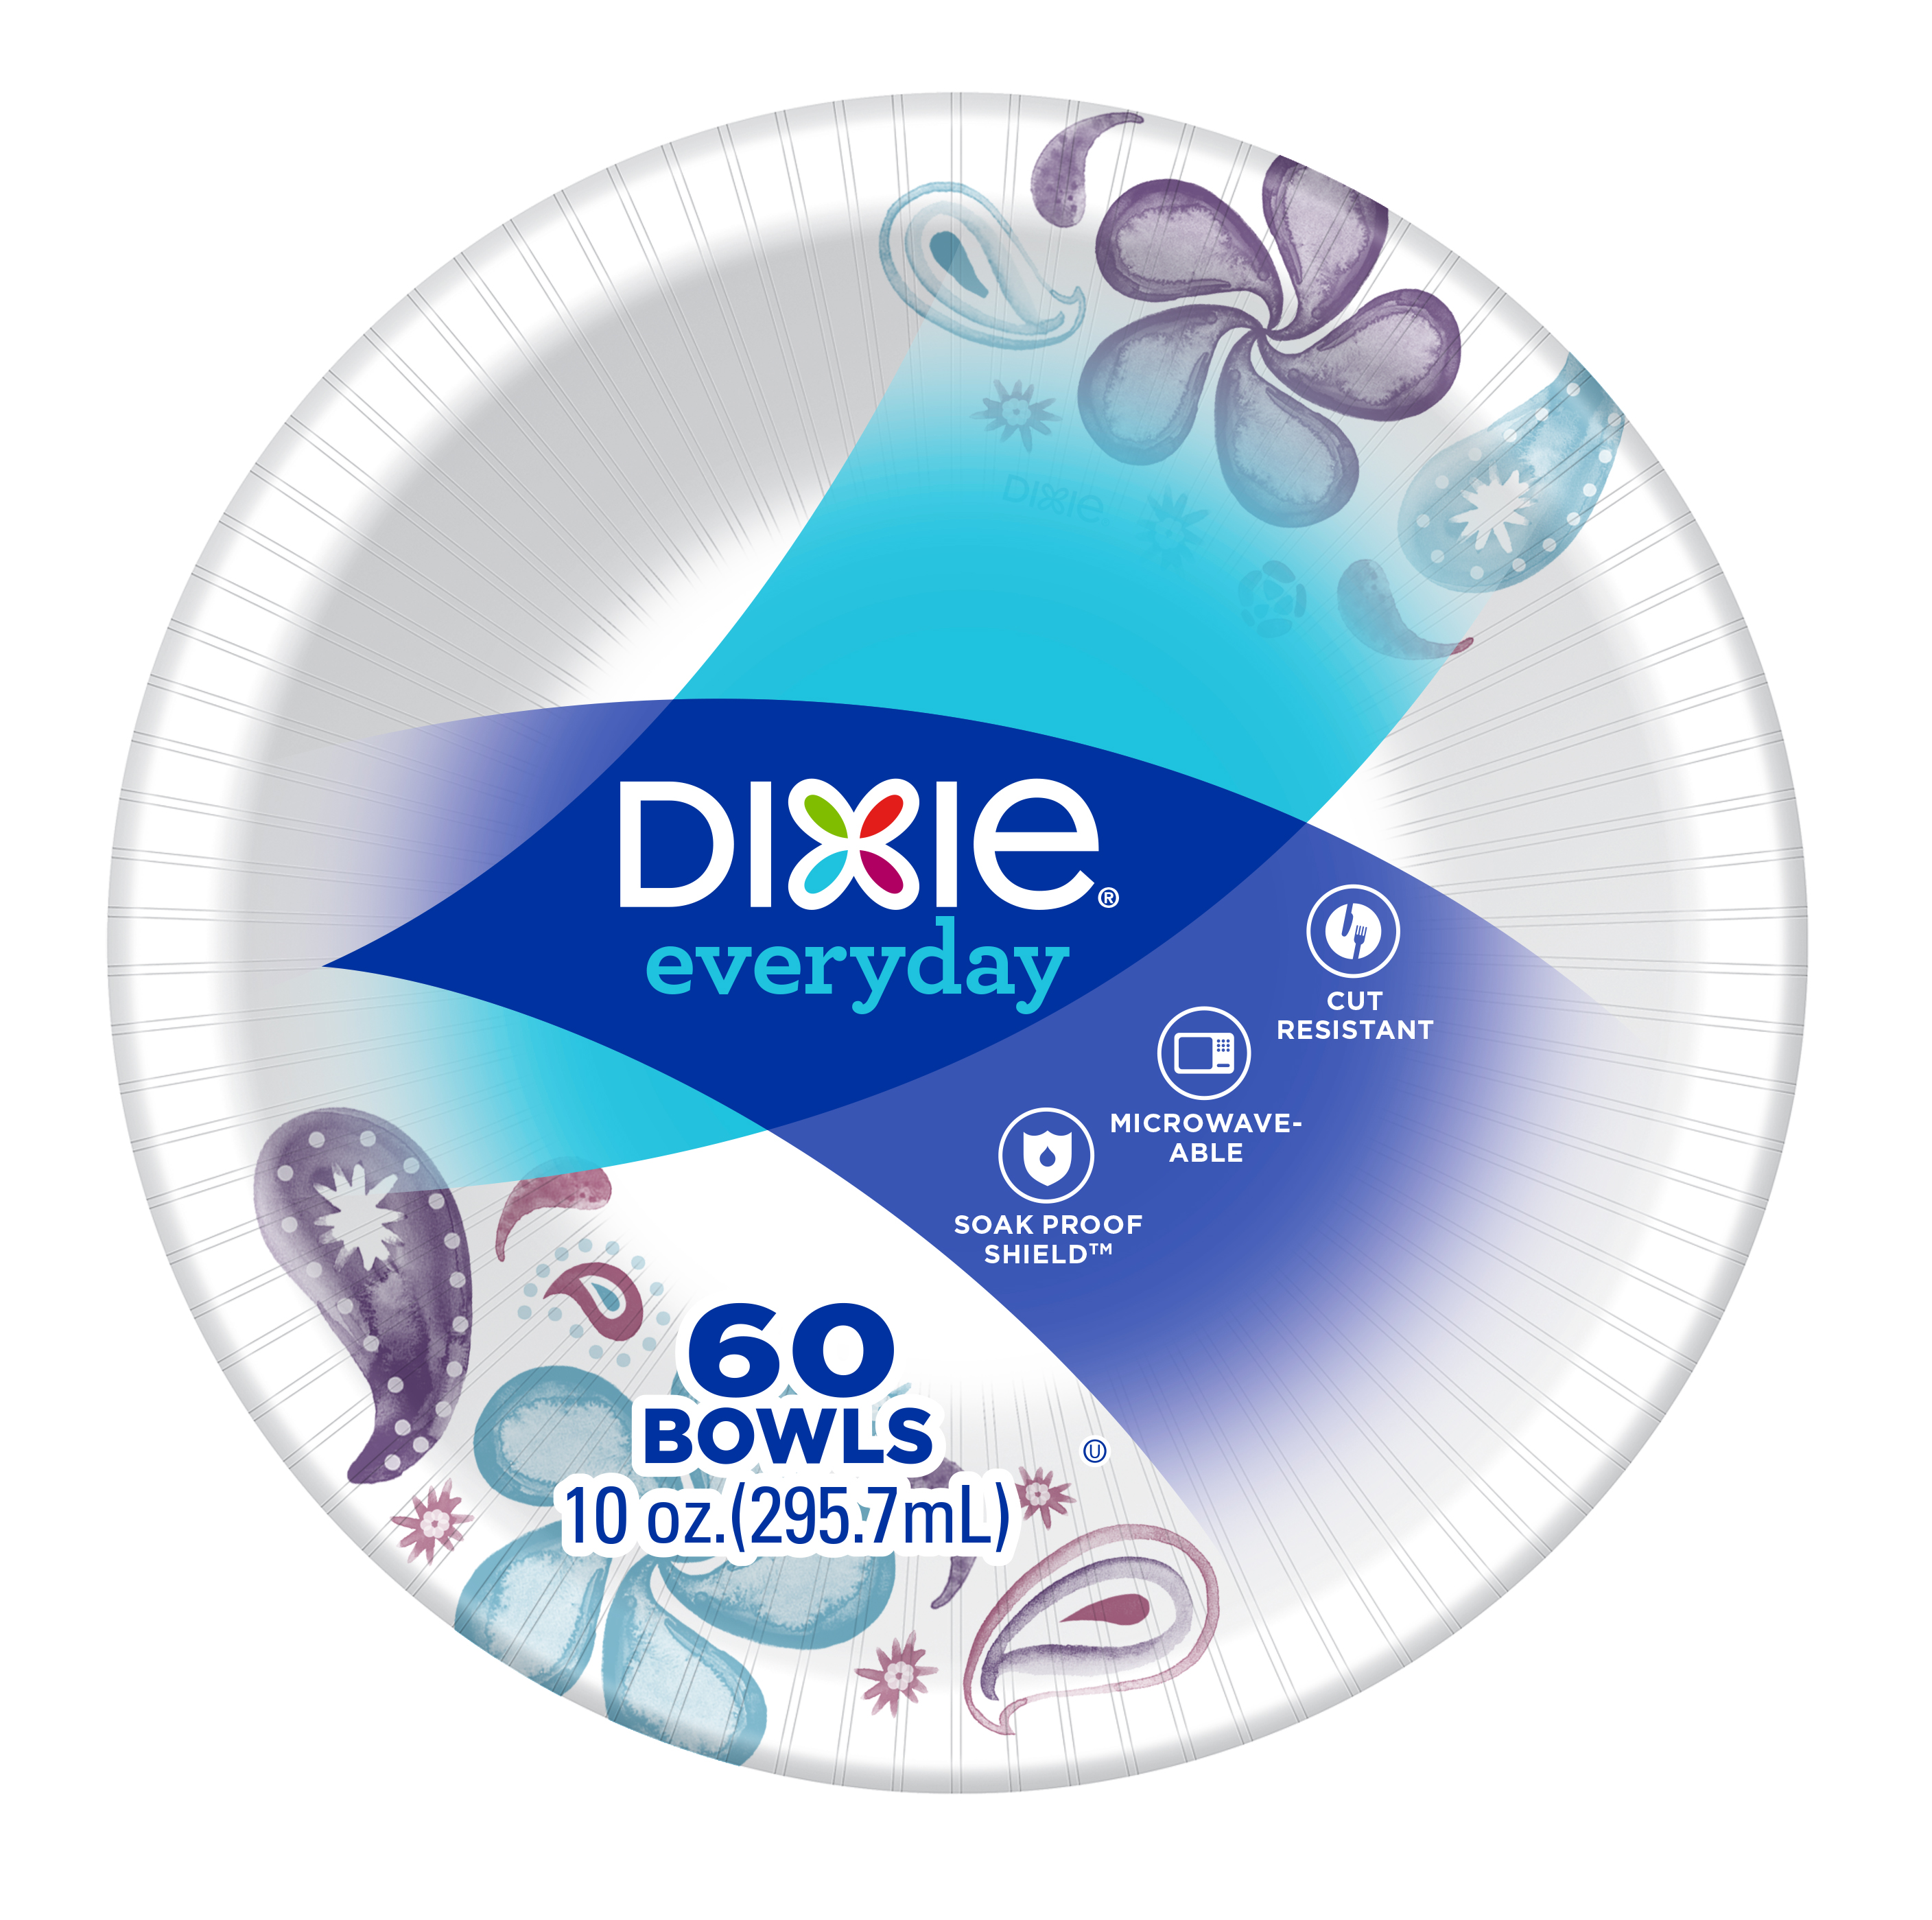 Dixie Everyday 10oz Bowls, 60ct